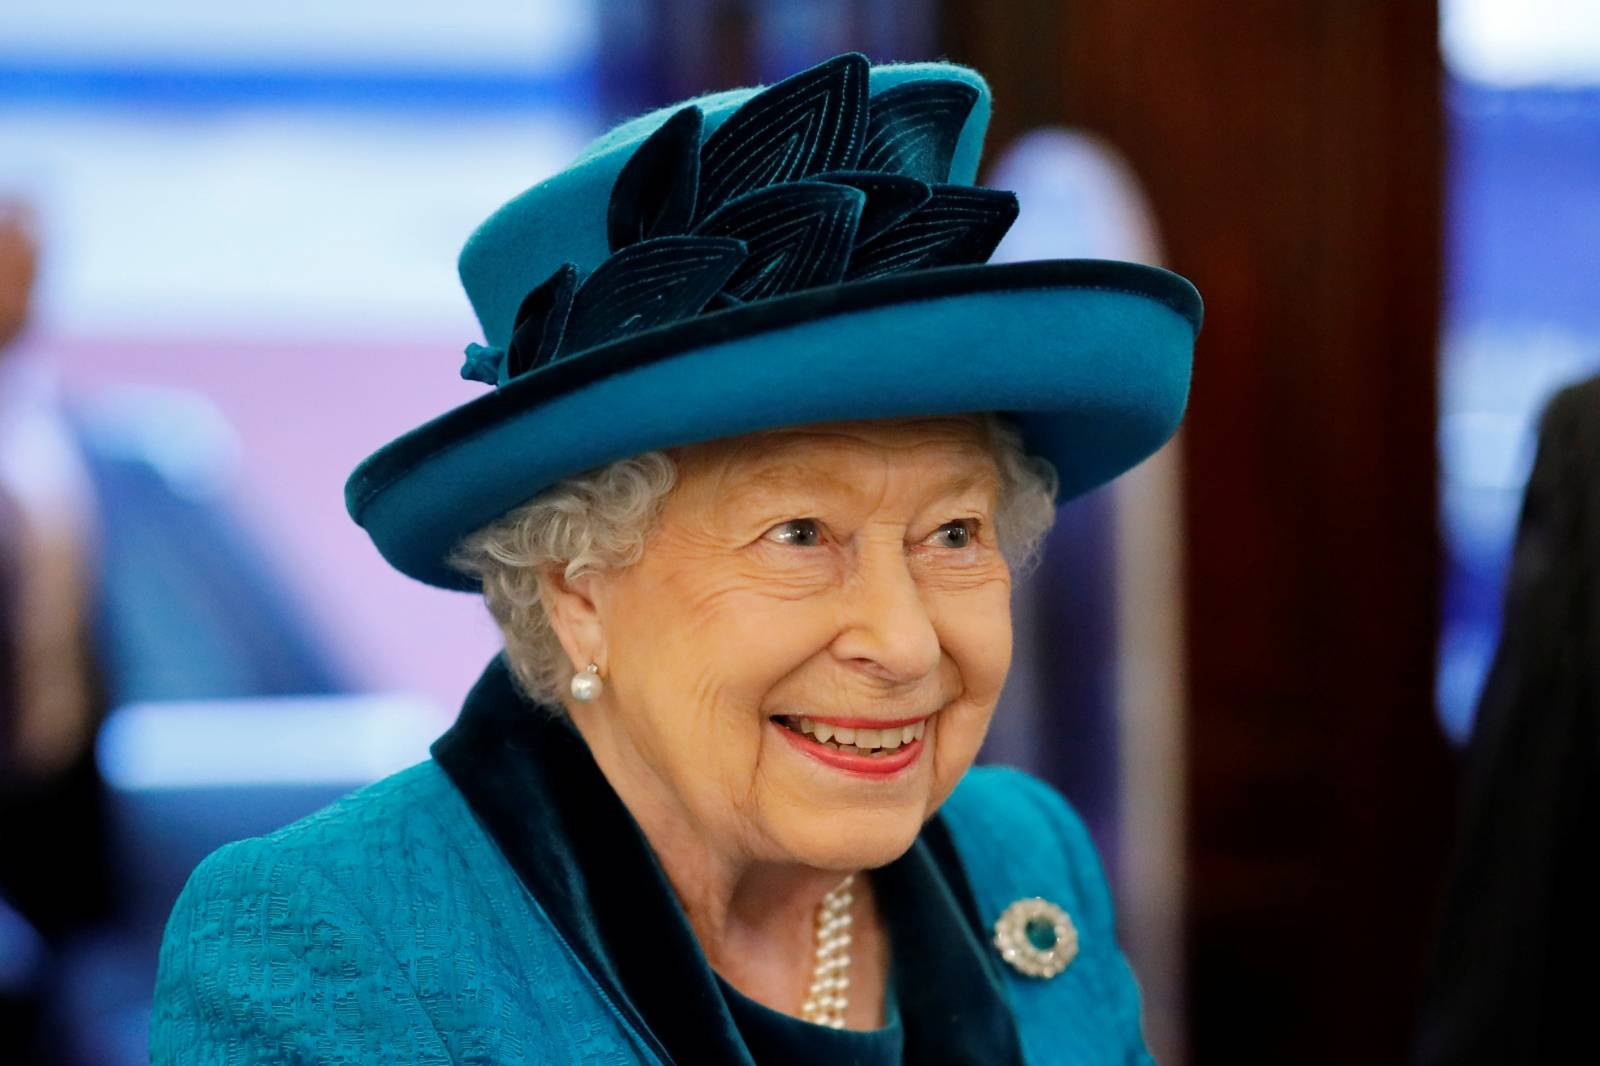 Britain's Queen Elizabeth visits the Royal Philatelic Society in London